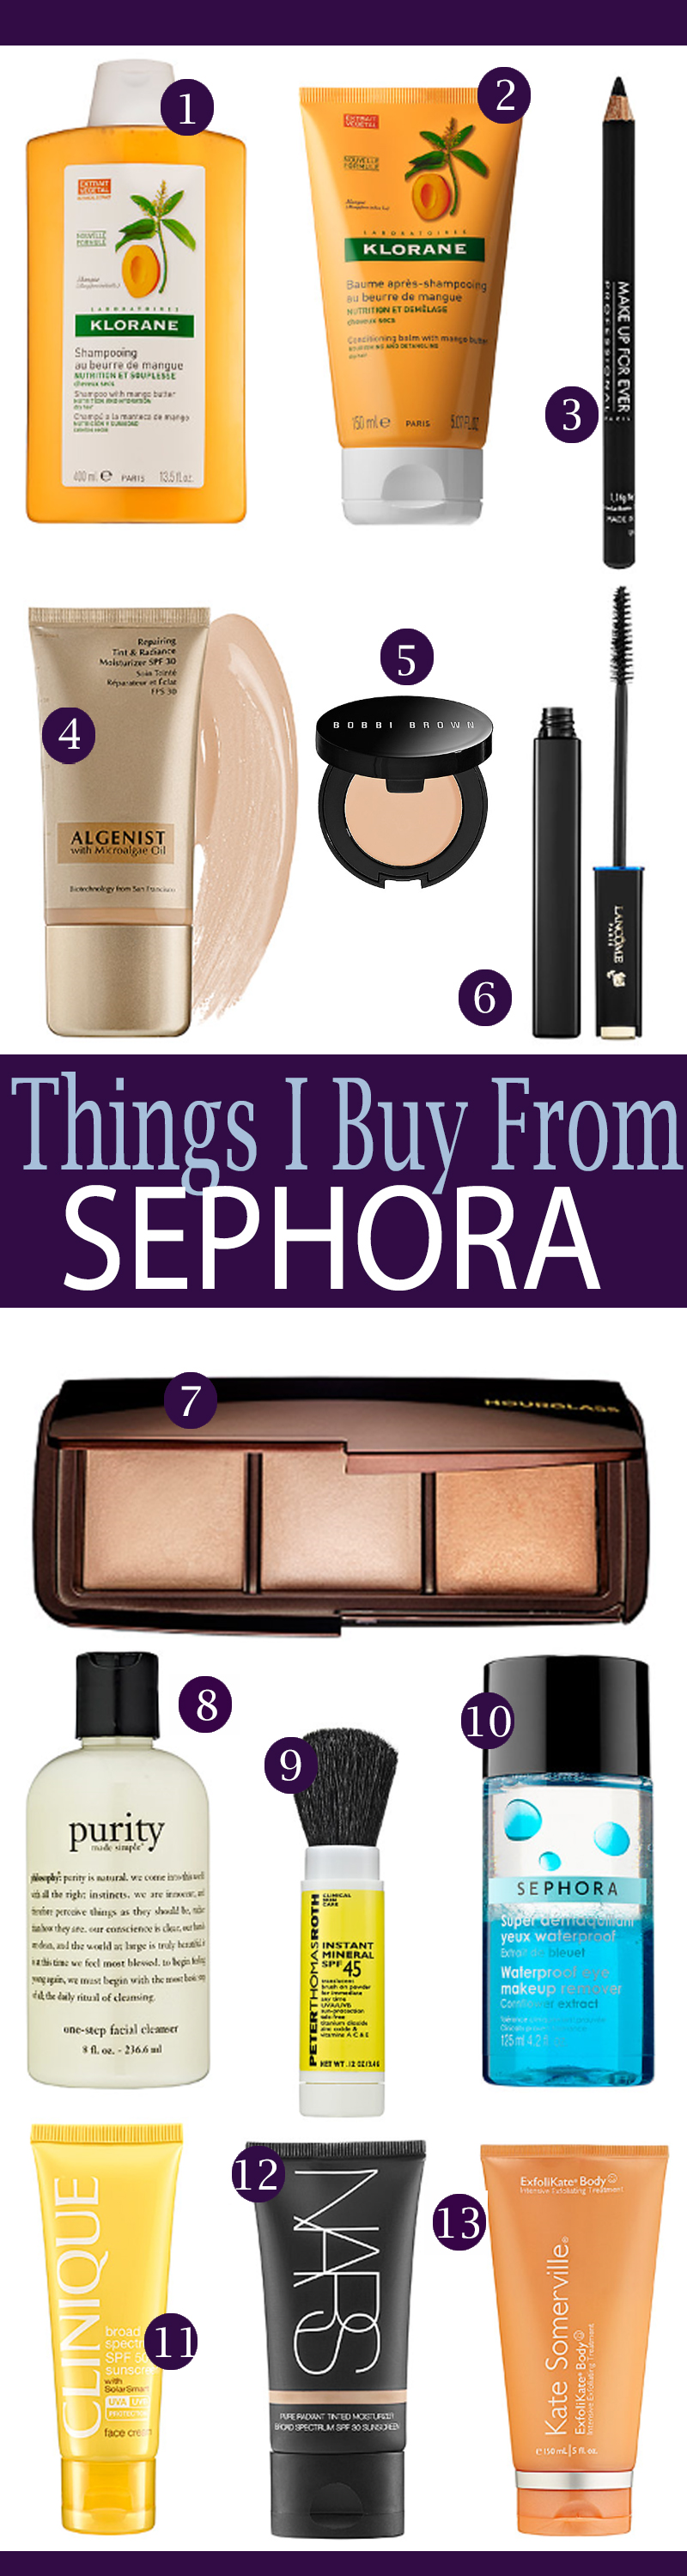 Things I buy from Sephora over and over